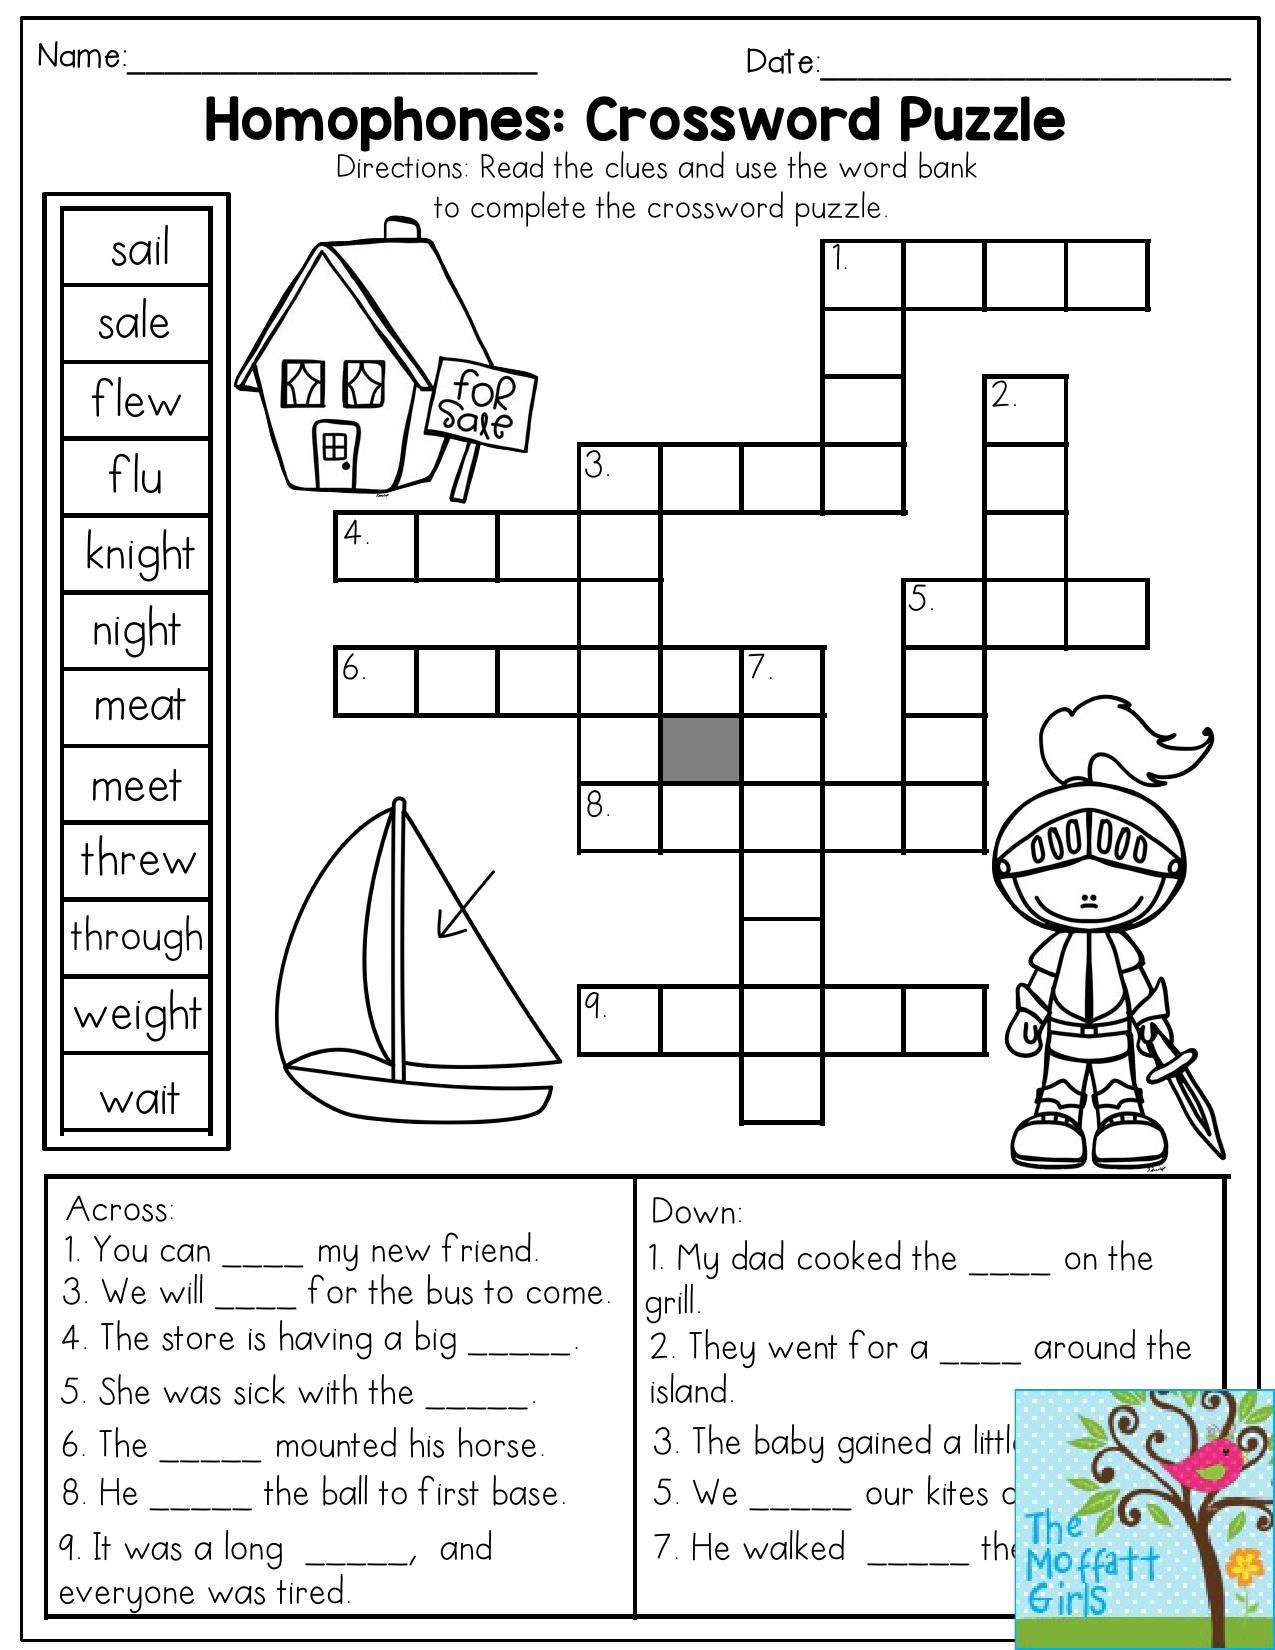 Homophones: Crossword Puzzle- Read The Clues And Use The Word Bank - Printable Crossword Puzzles For 1St Graders